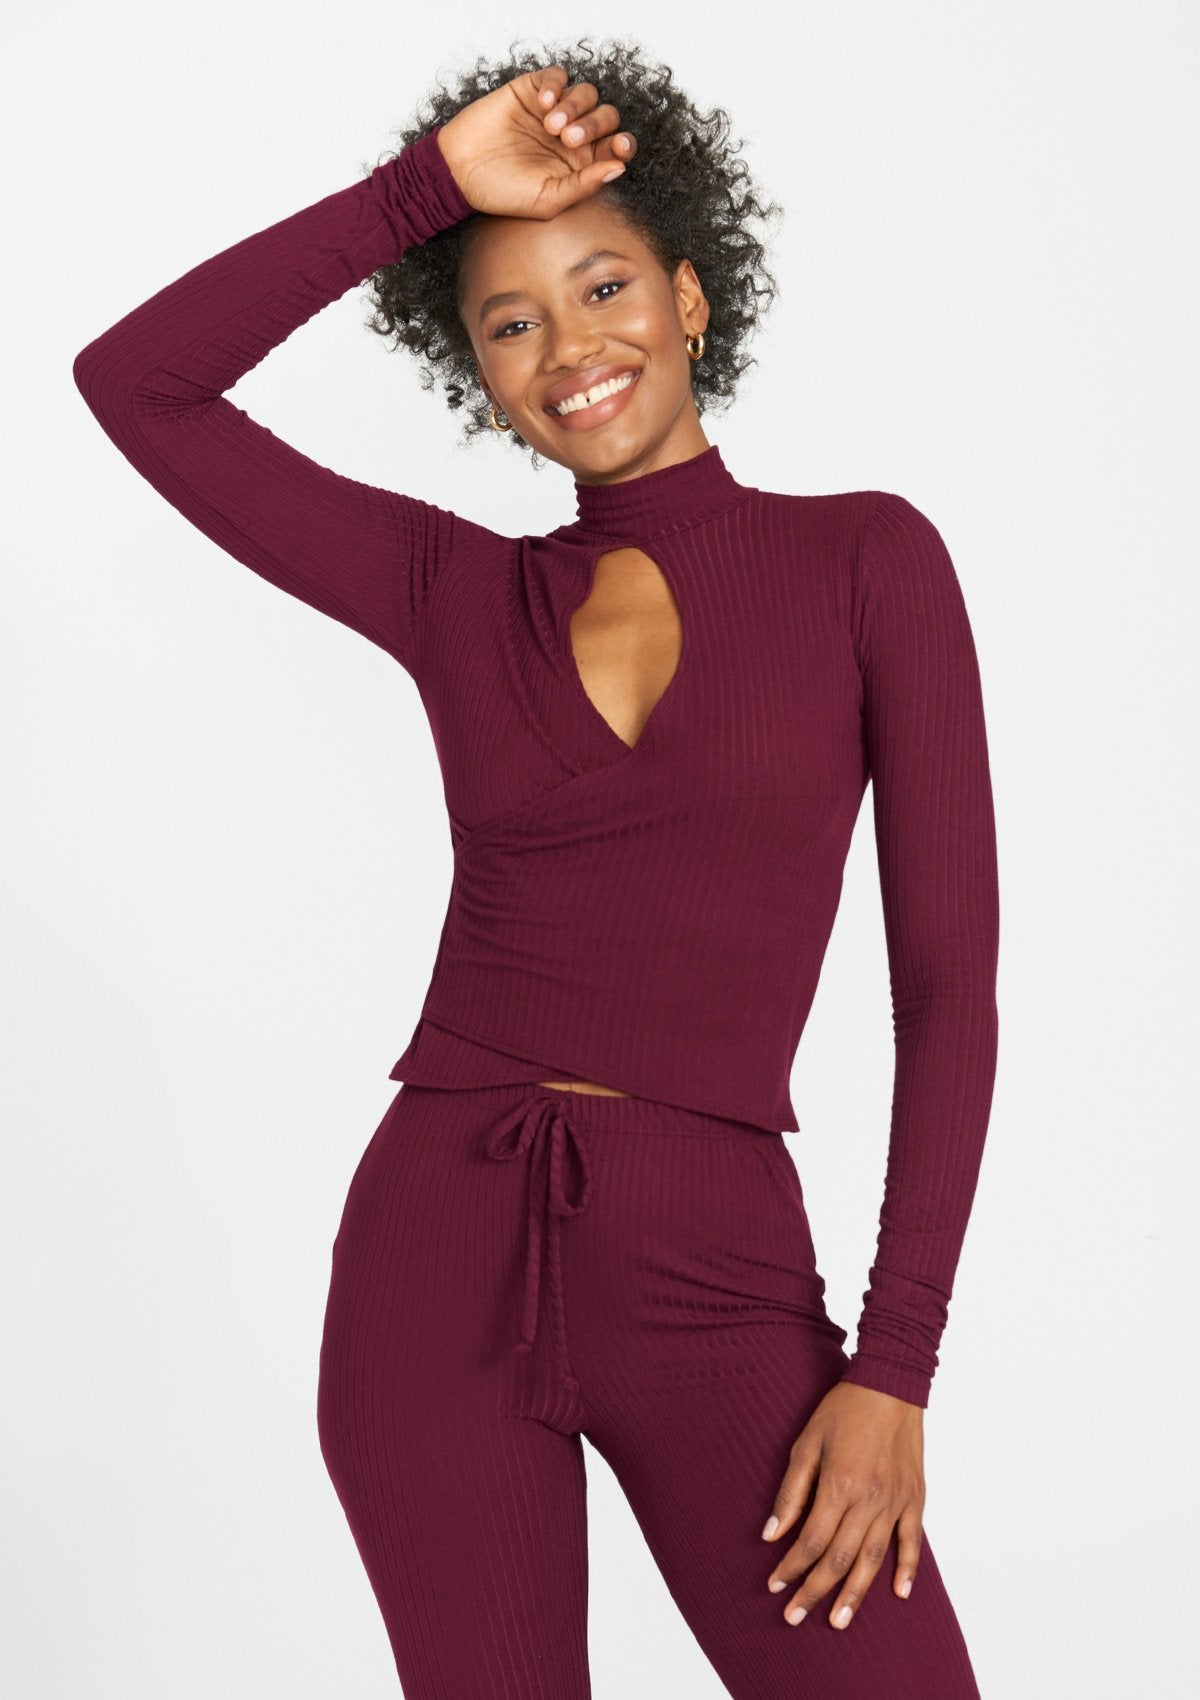 Alloy Apparel Tall Rib Knit Long Sleeve Cropped Top for Women in Wine Size M   Polyester